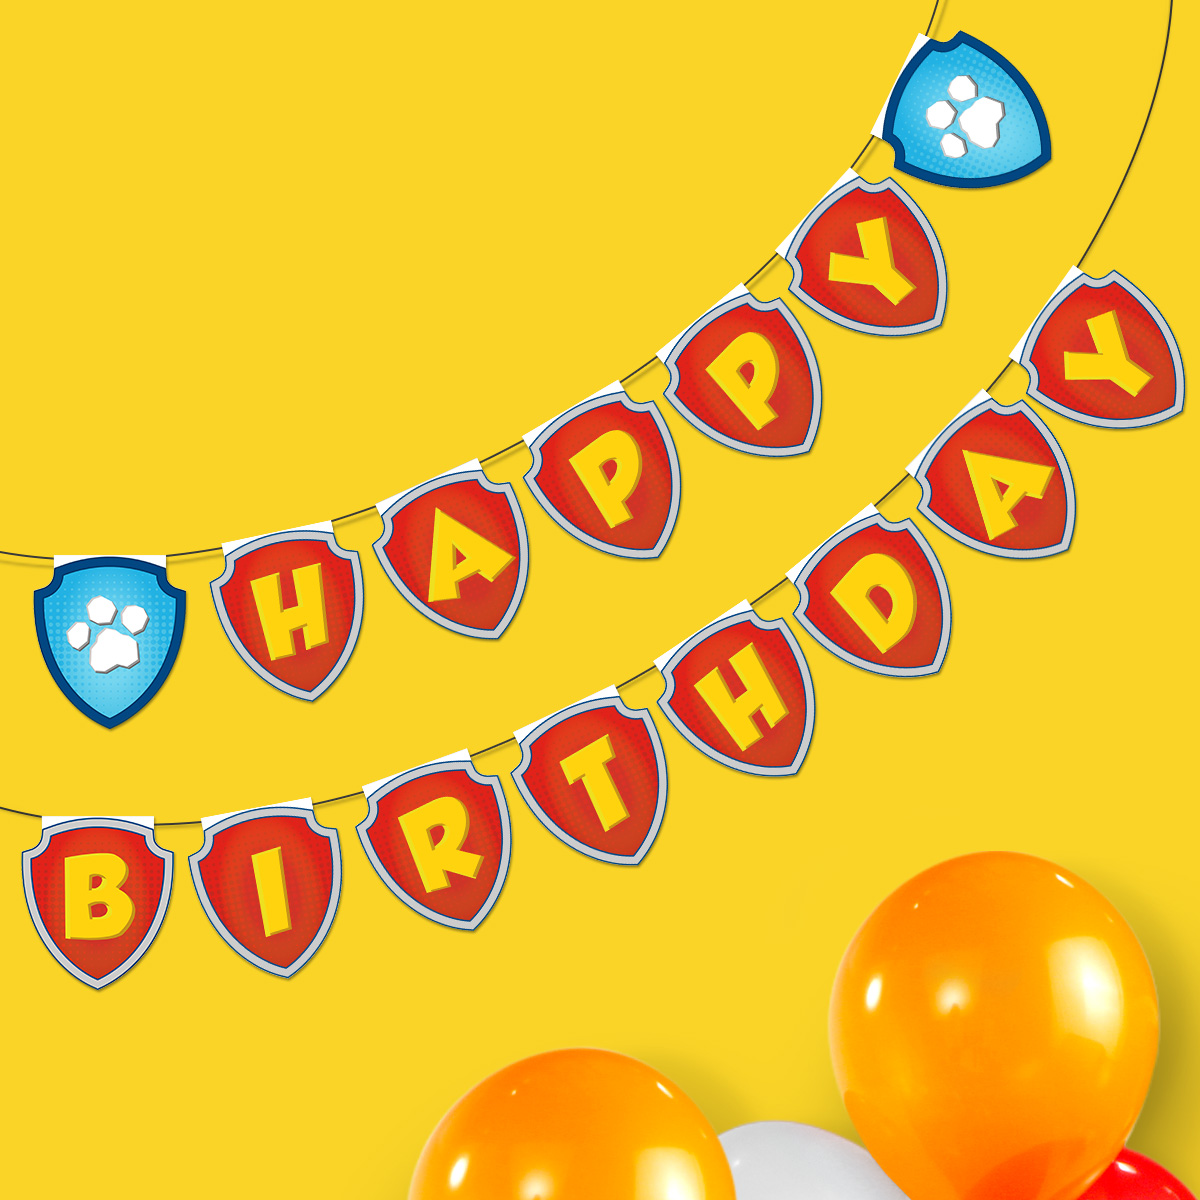 13 bubble guppies birthday banner template paw patrol birthday banner nickelodeon parents - Bubble guppies birthday banner template ...